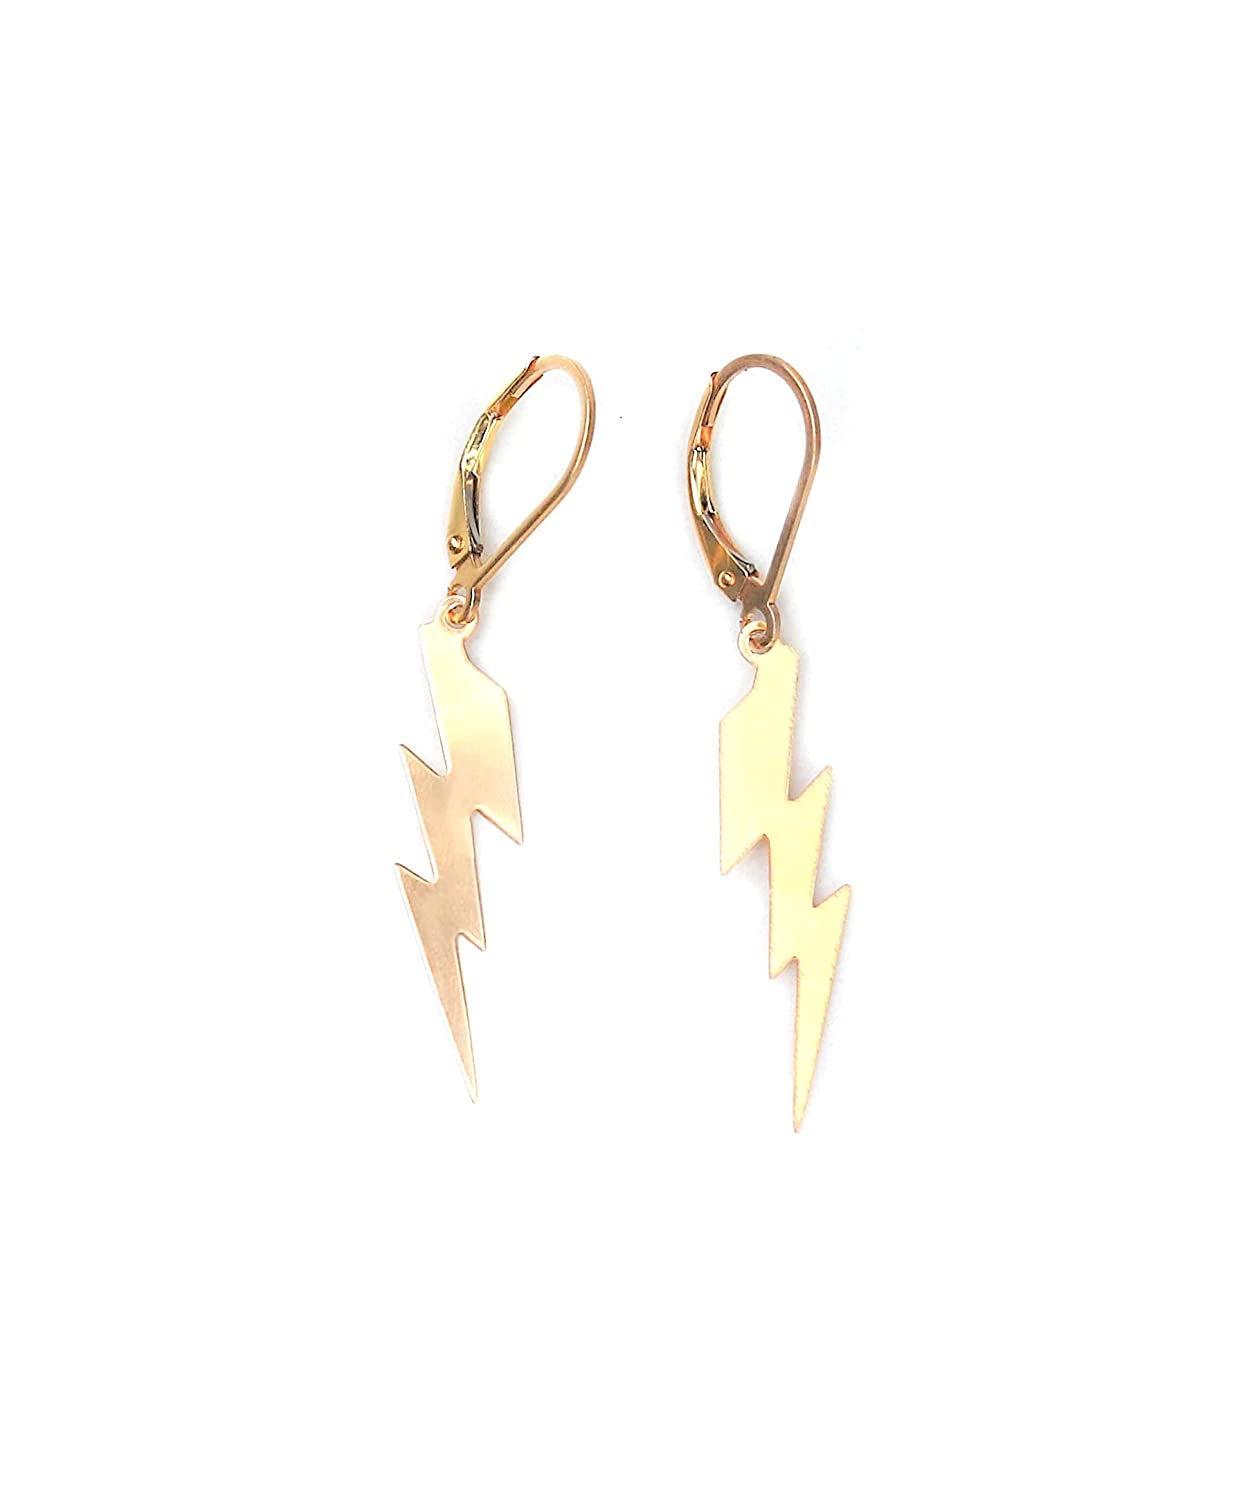 14K Gold Filled Dangle lightning sale in Handcrafted Spring new work one after another earrings bolt -